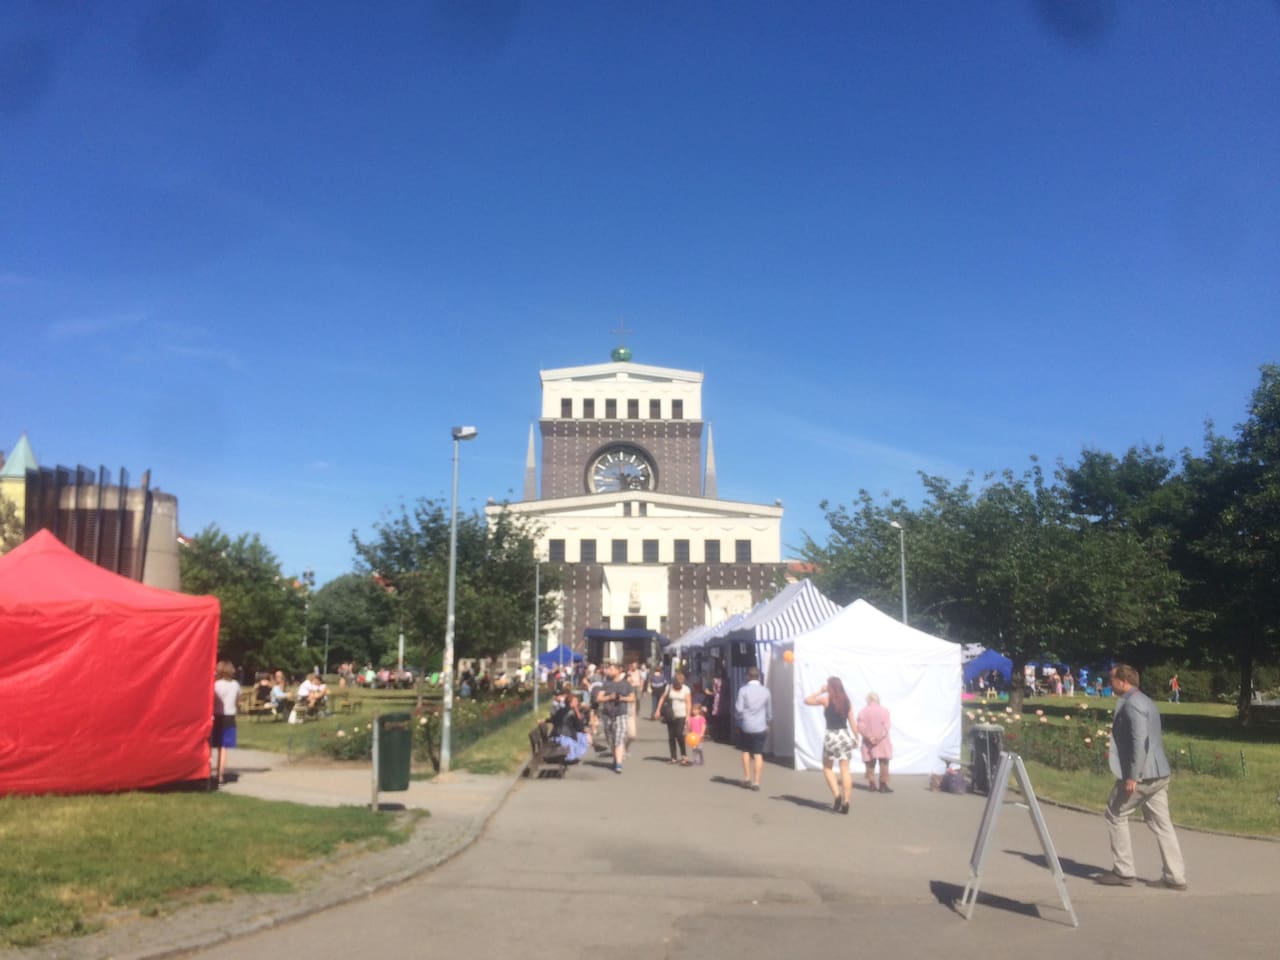 Here is a view of the Jiriho z Podebrad square on a food festival day.